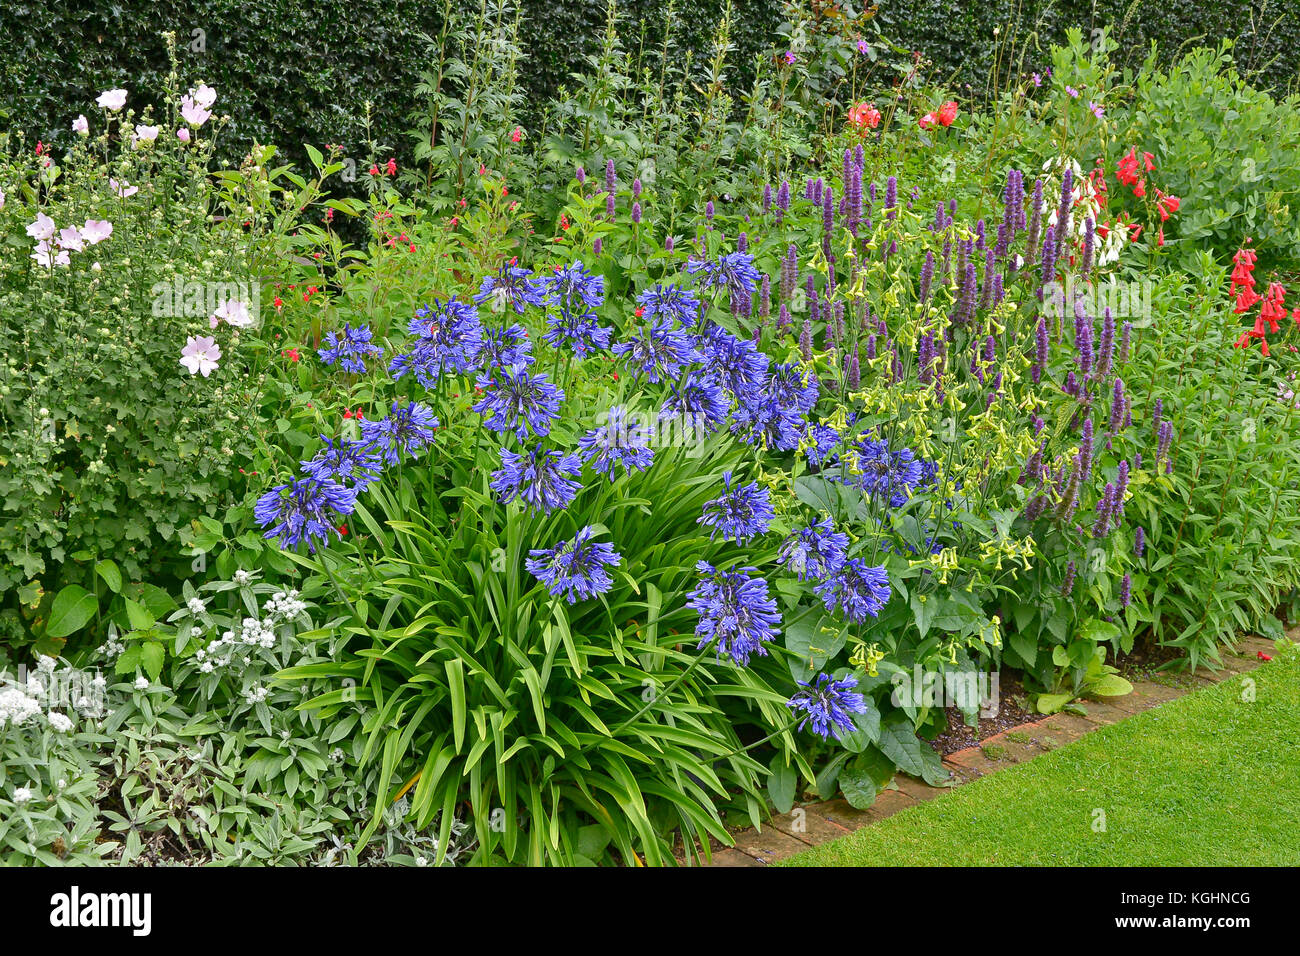 Agapanthus Foglie Gialle veronicastrum stock photos & veronicastrum stock images